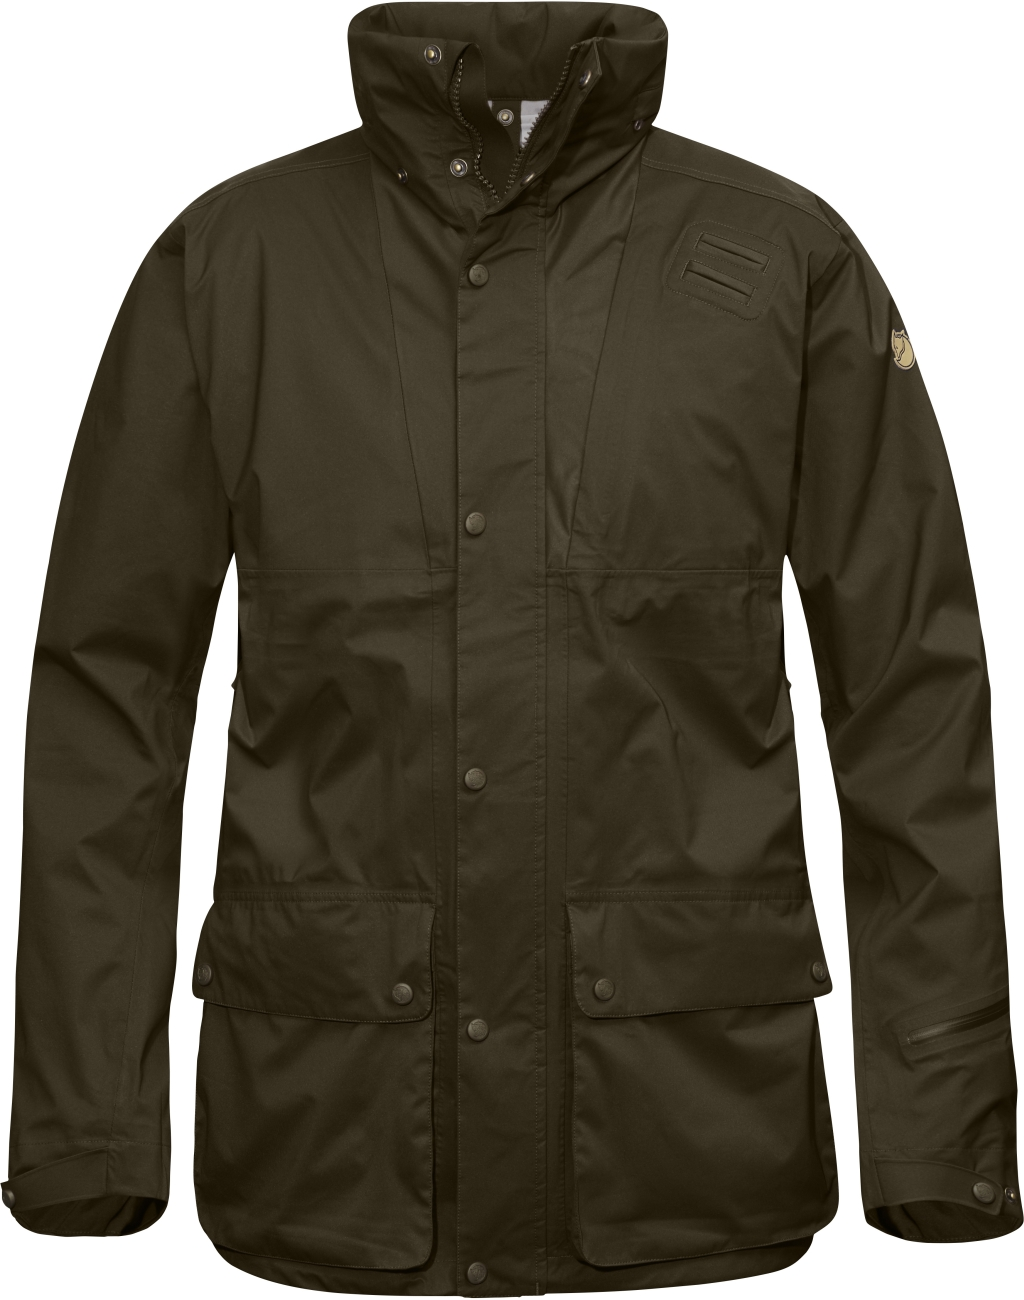 FjallRaven Varmland Eco-Shell Jacket Dark Olive-30